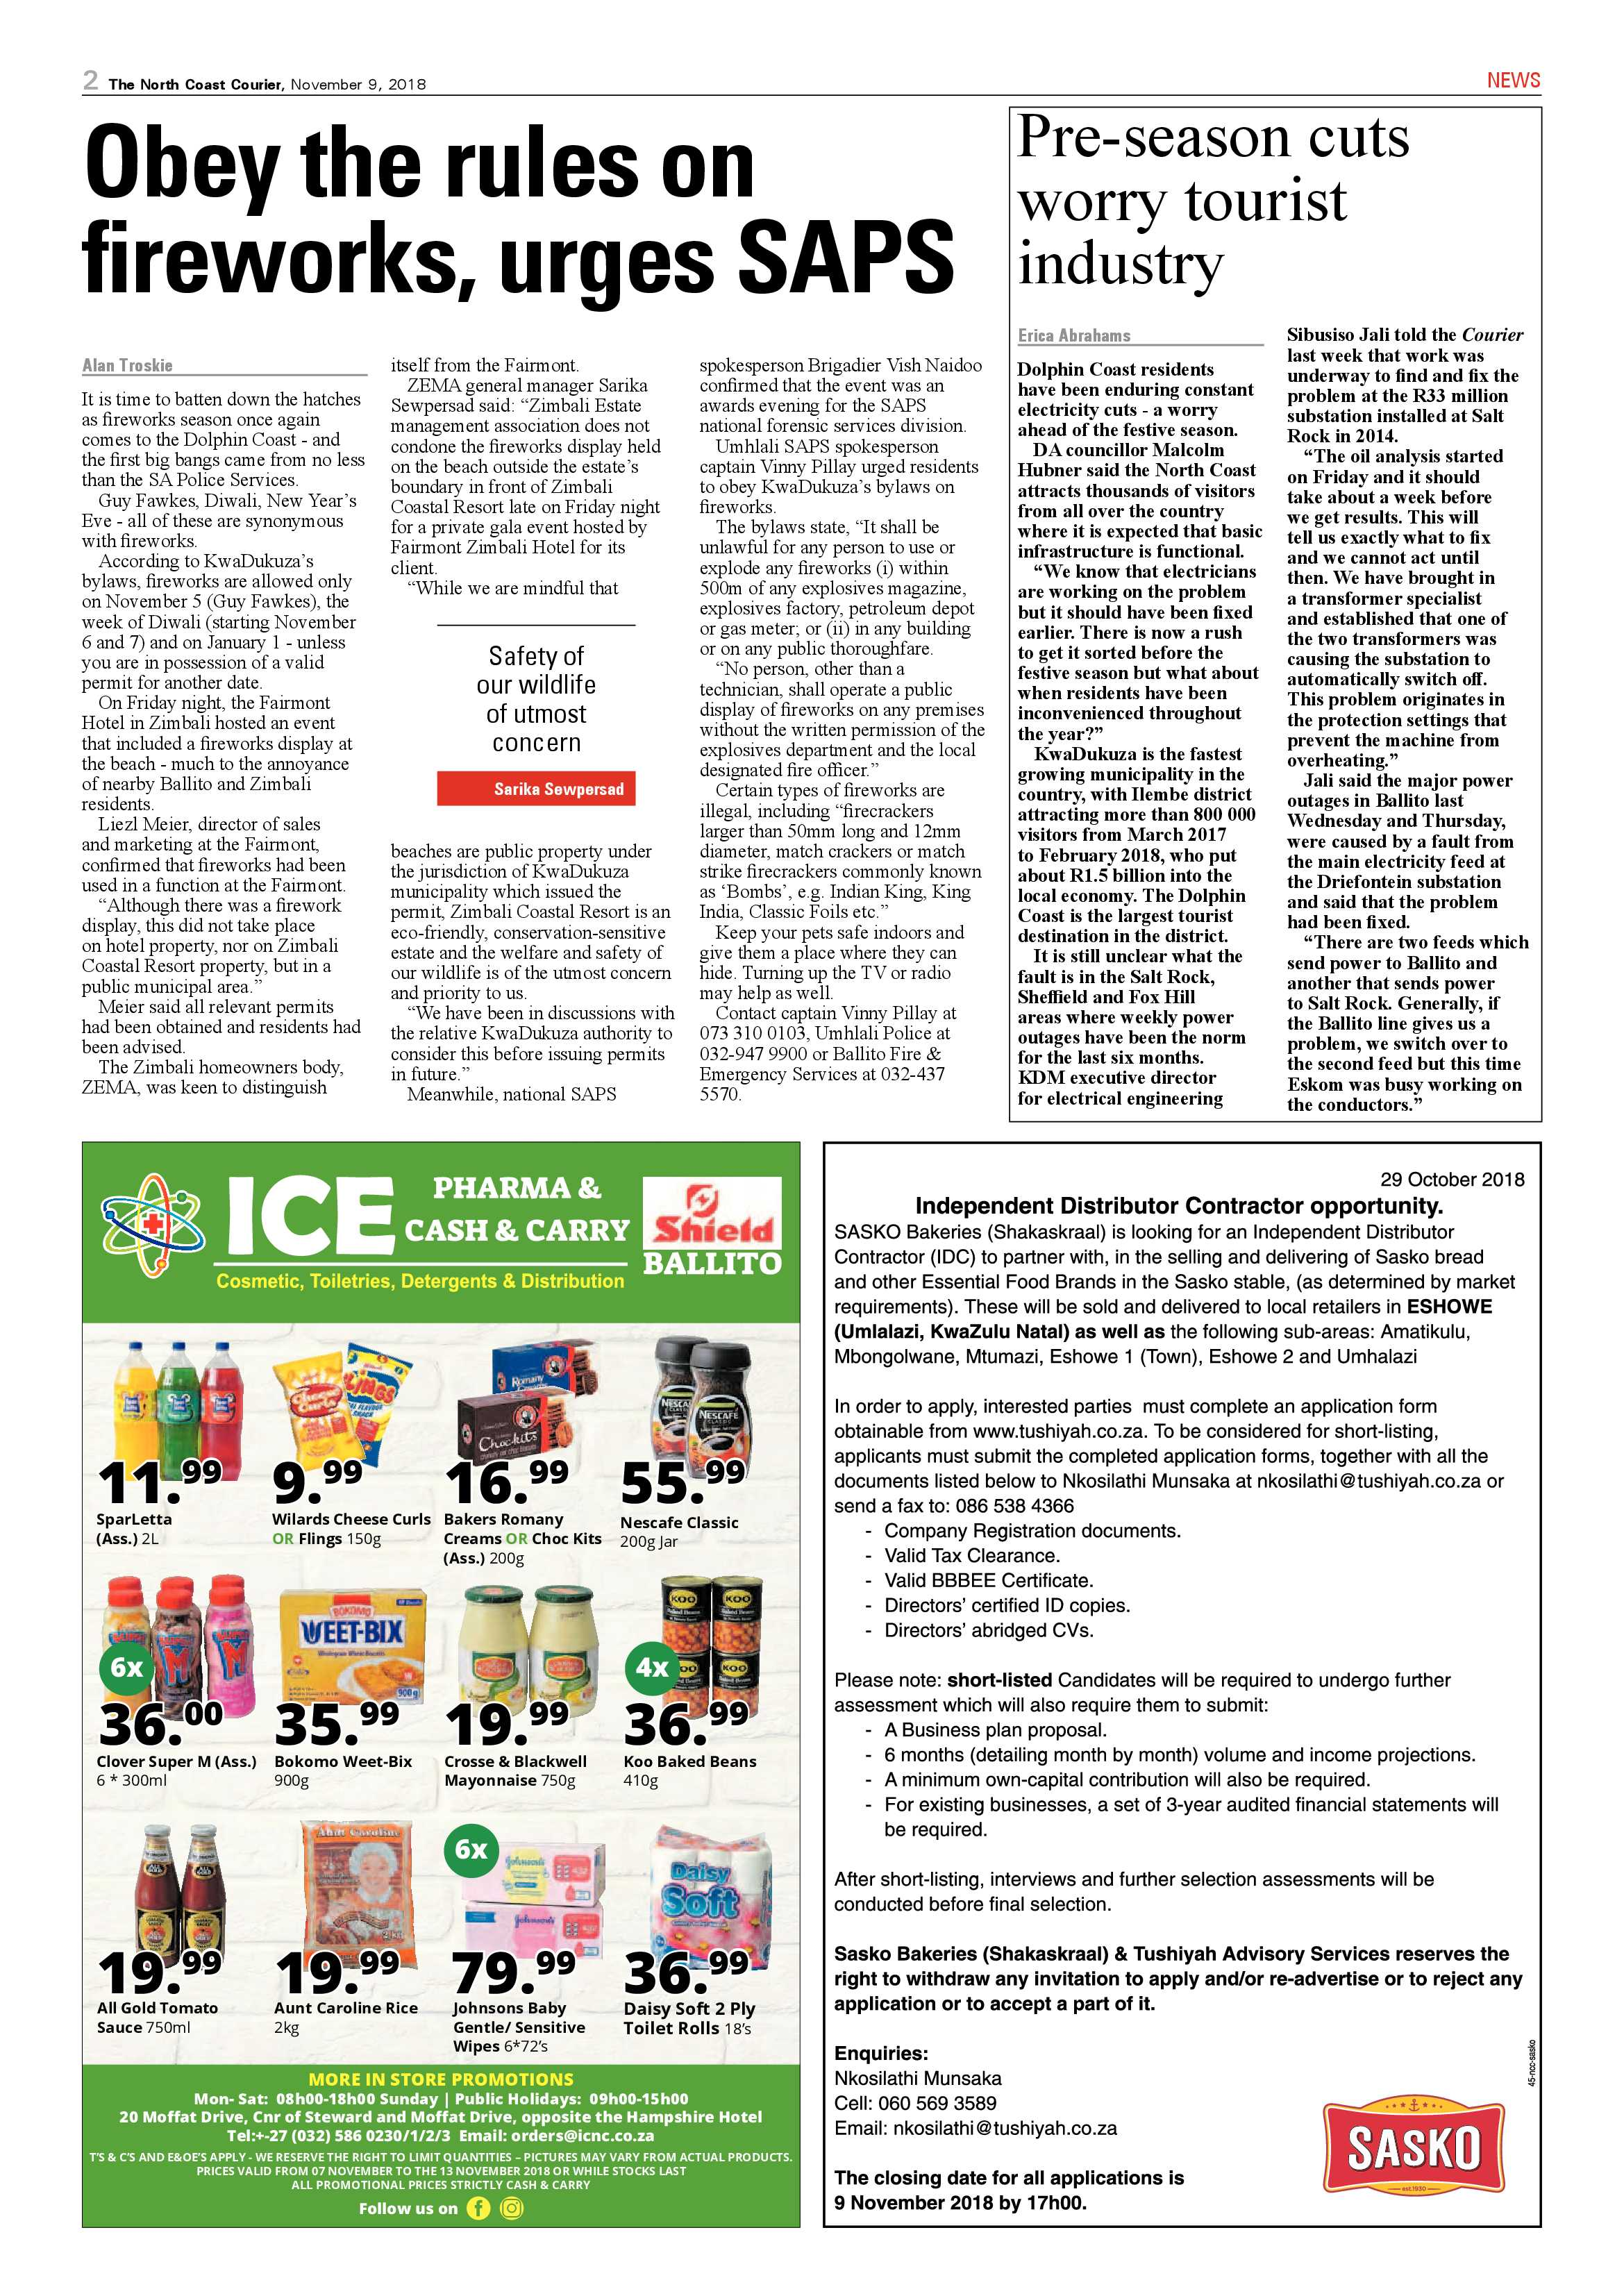 north-coast-courier-09-november-2018-epapers-page-2